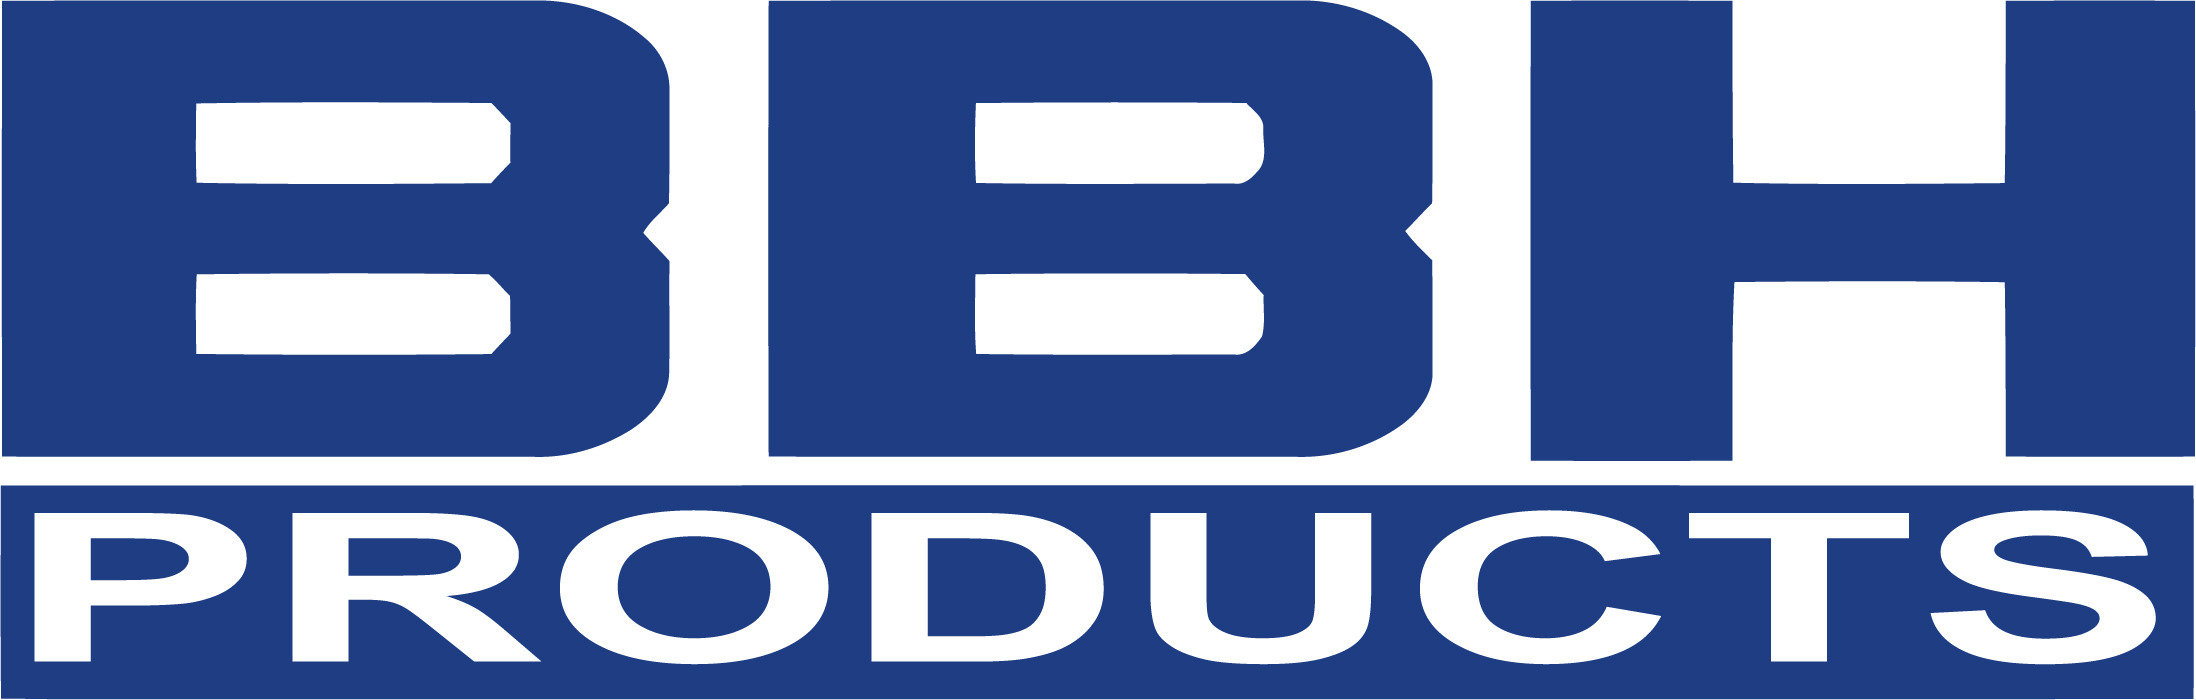 Bbh products logo